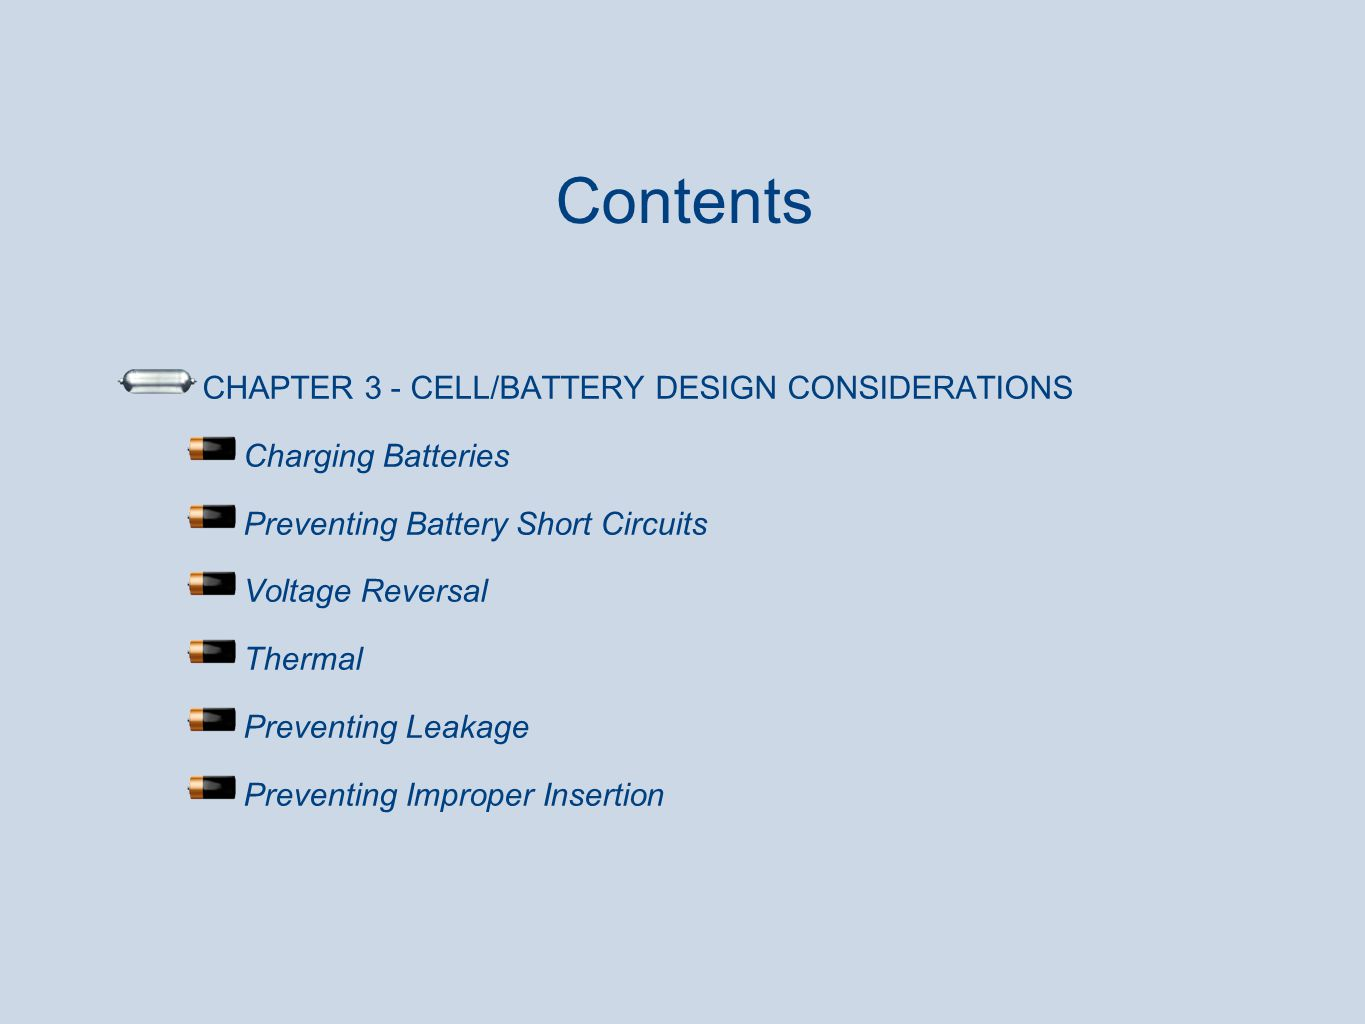 Battery Safety And Design Manual For Payloads Presented By Jerri S Short Circuit 5 Contents Chapter 3 Cell Considerations Charging Batteries Preventing Circuits Voltage Reversal Thermal Leakage